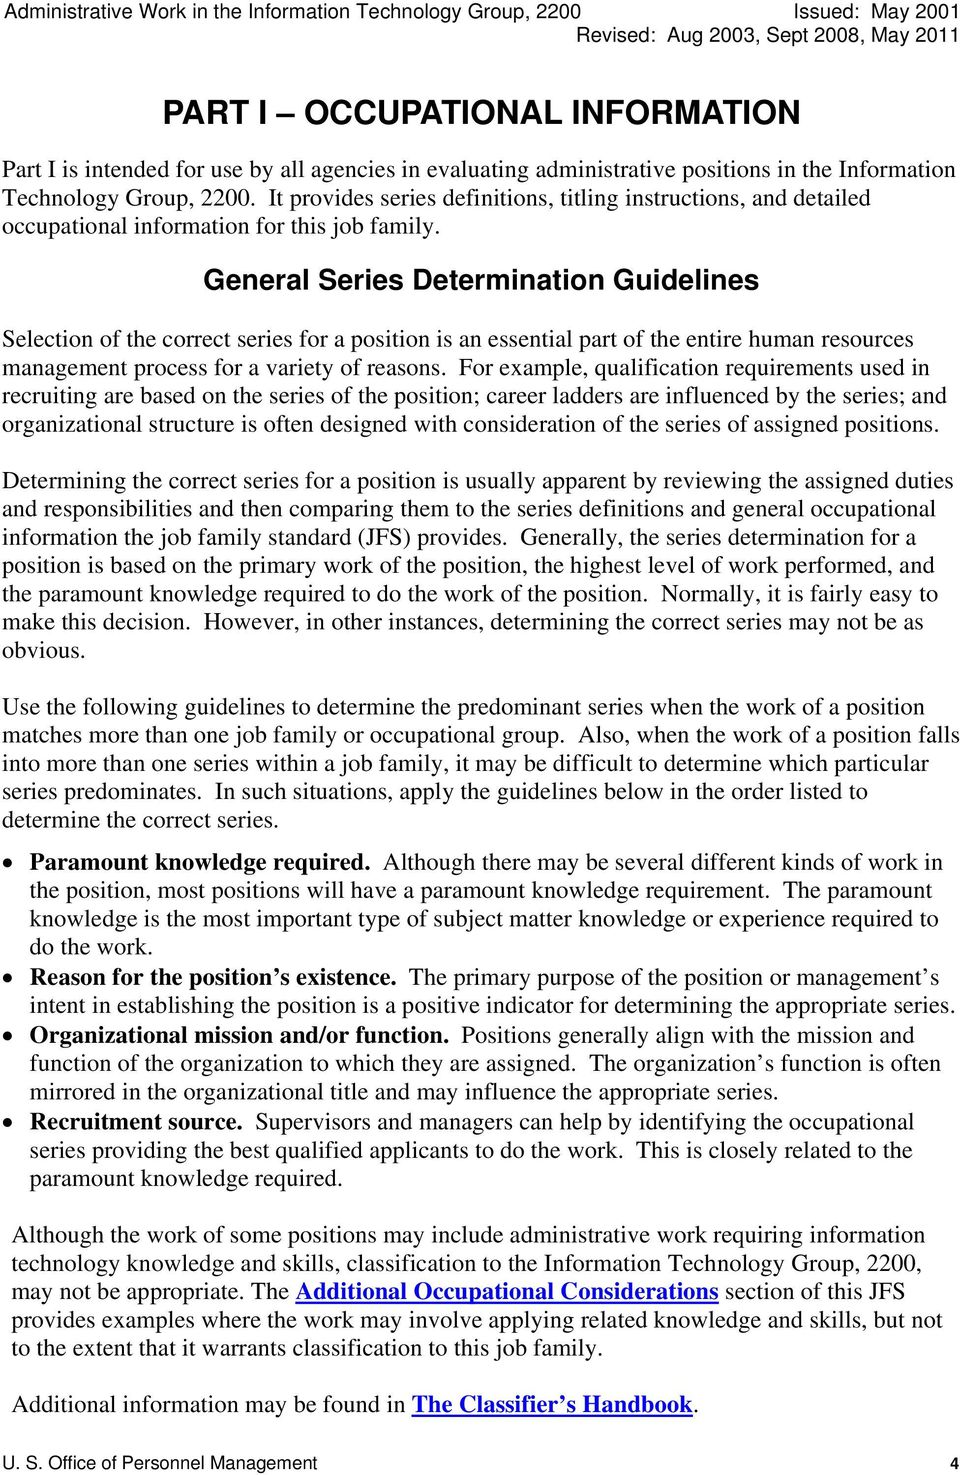 General Series Determination Guidelines Selection of the correct series for a position is an essential part of the entire human resources management process for a variety of reasons.